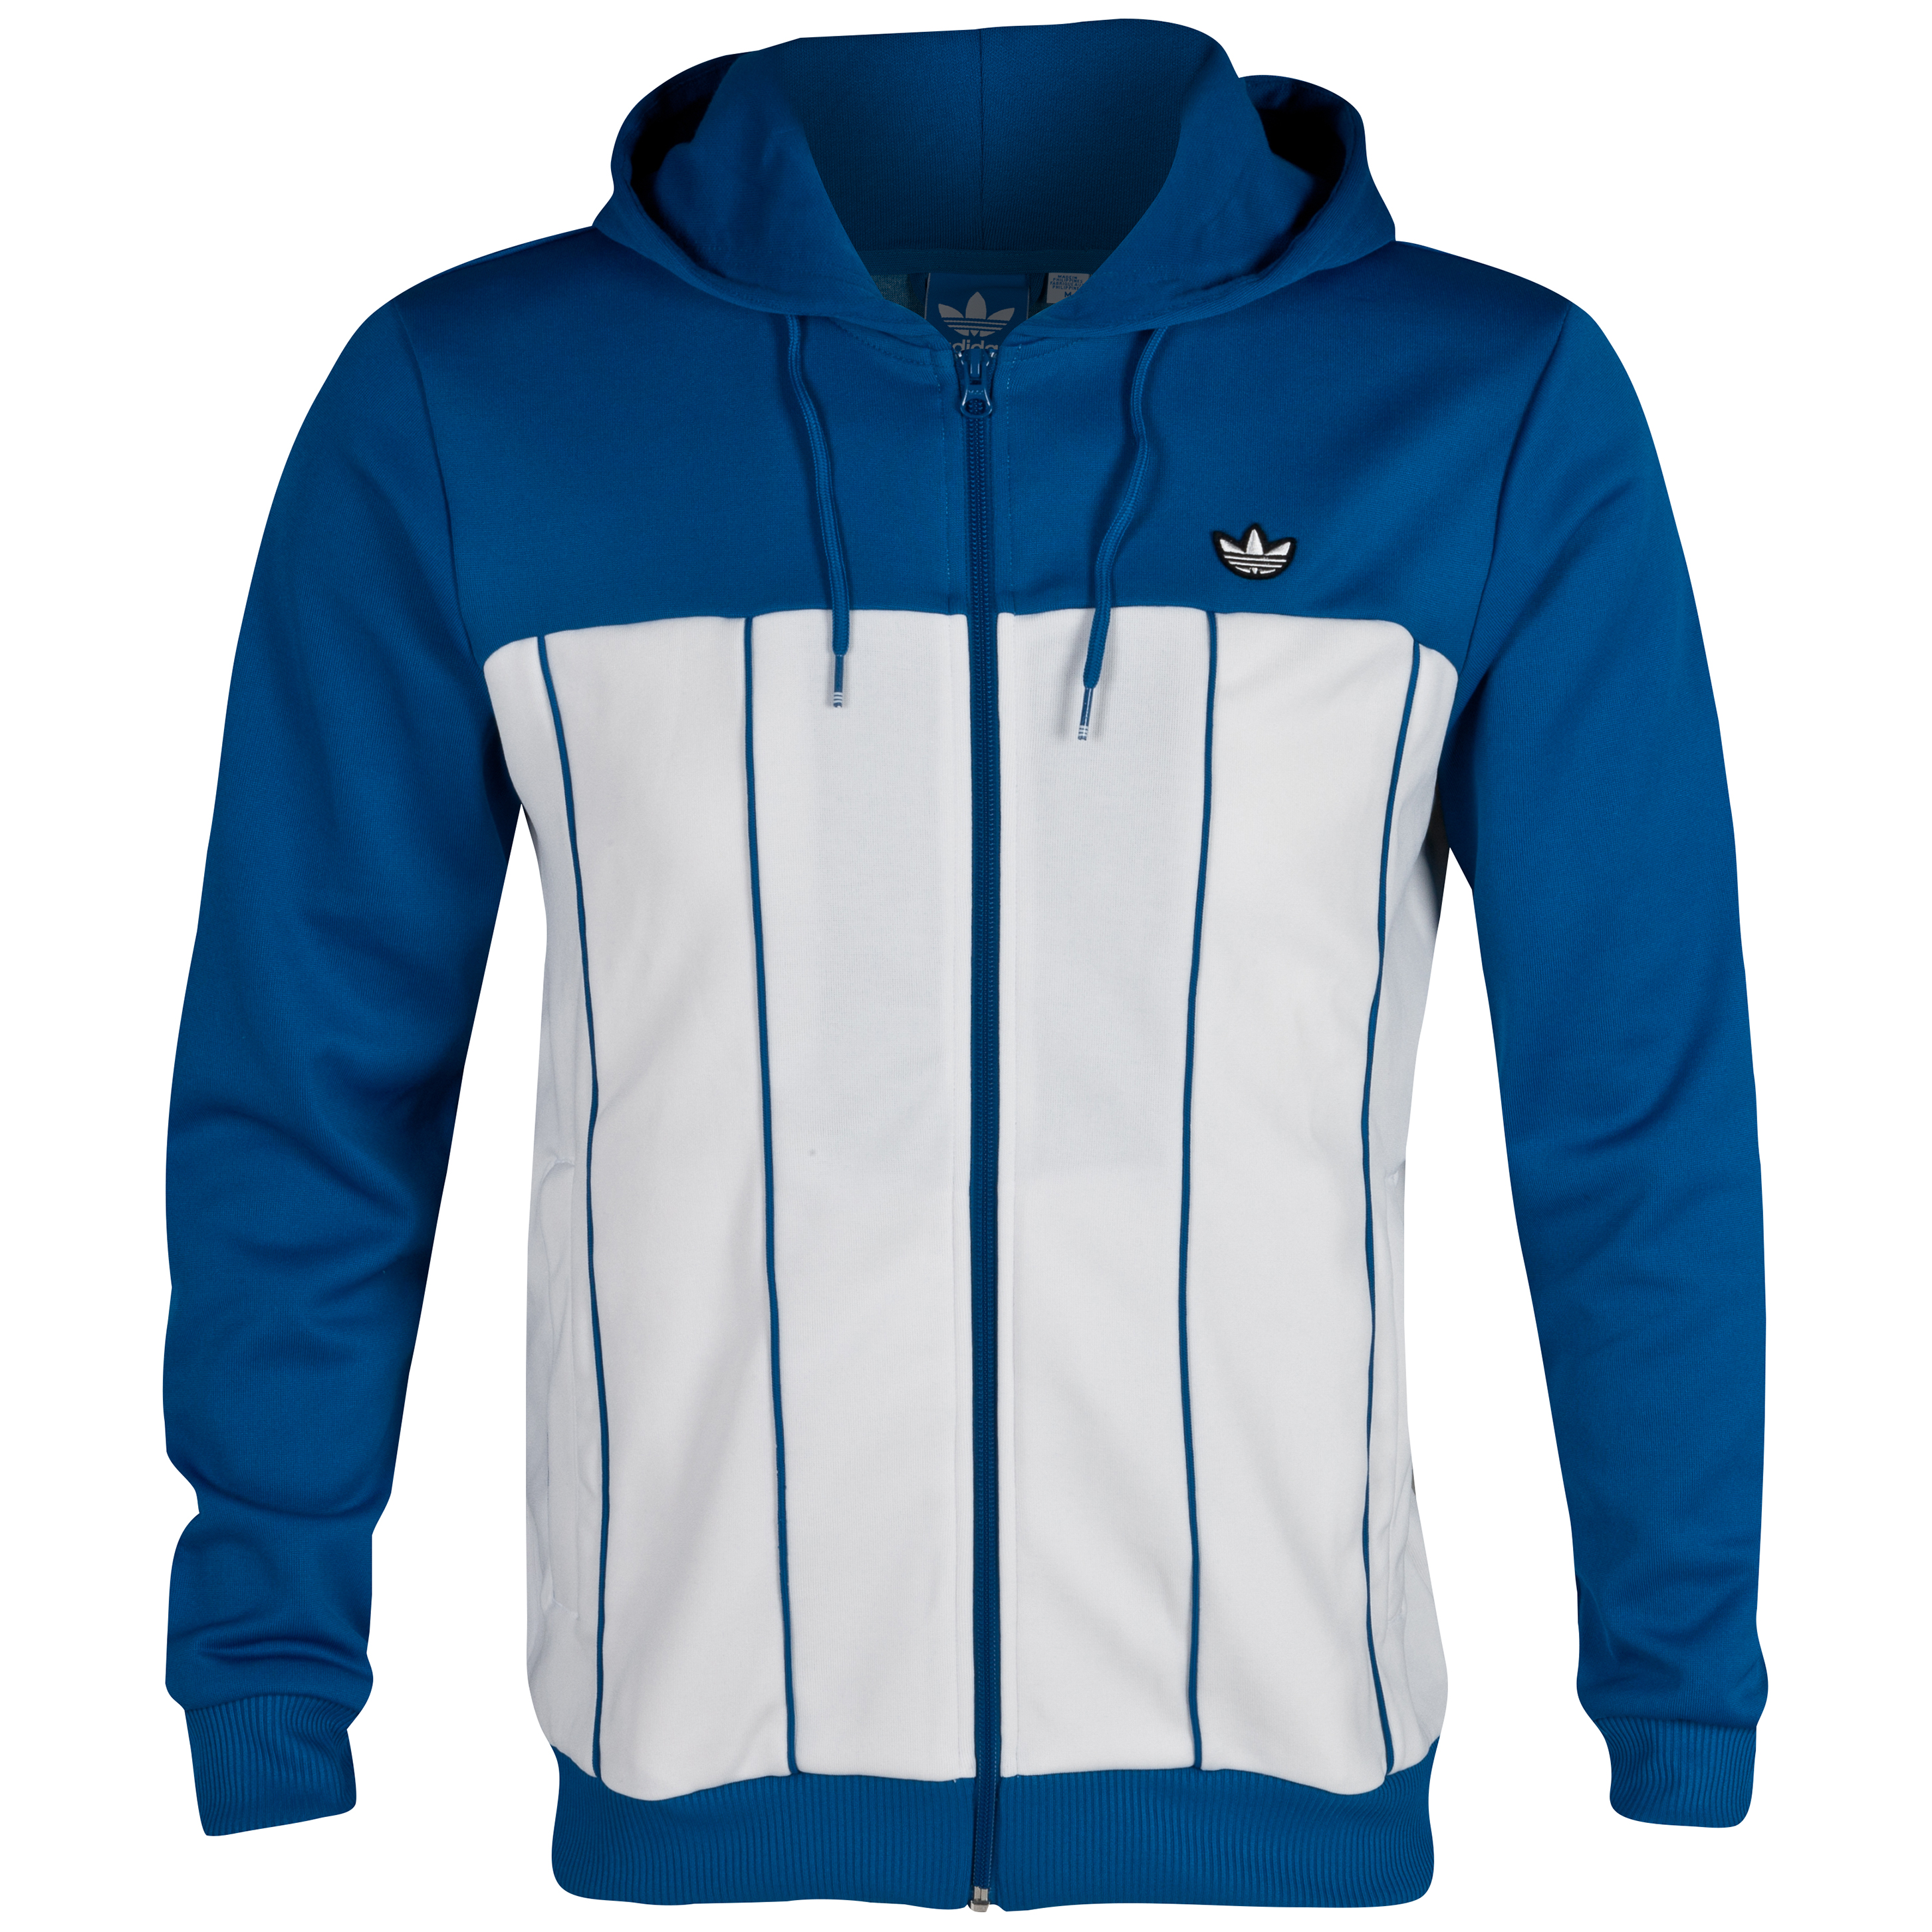 Originals Vintage Pinstripe Hood Track Top - Dark Royal /White Vapour